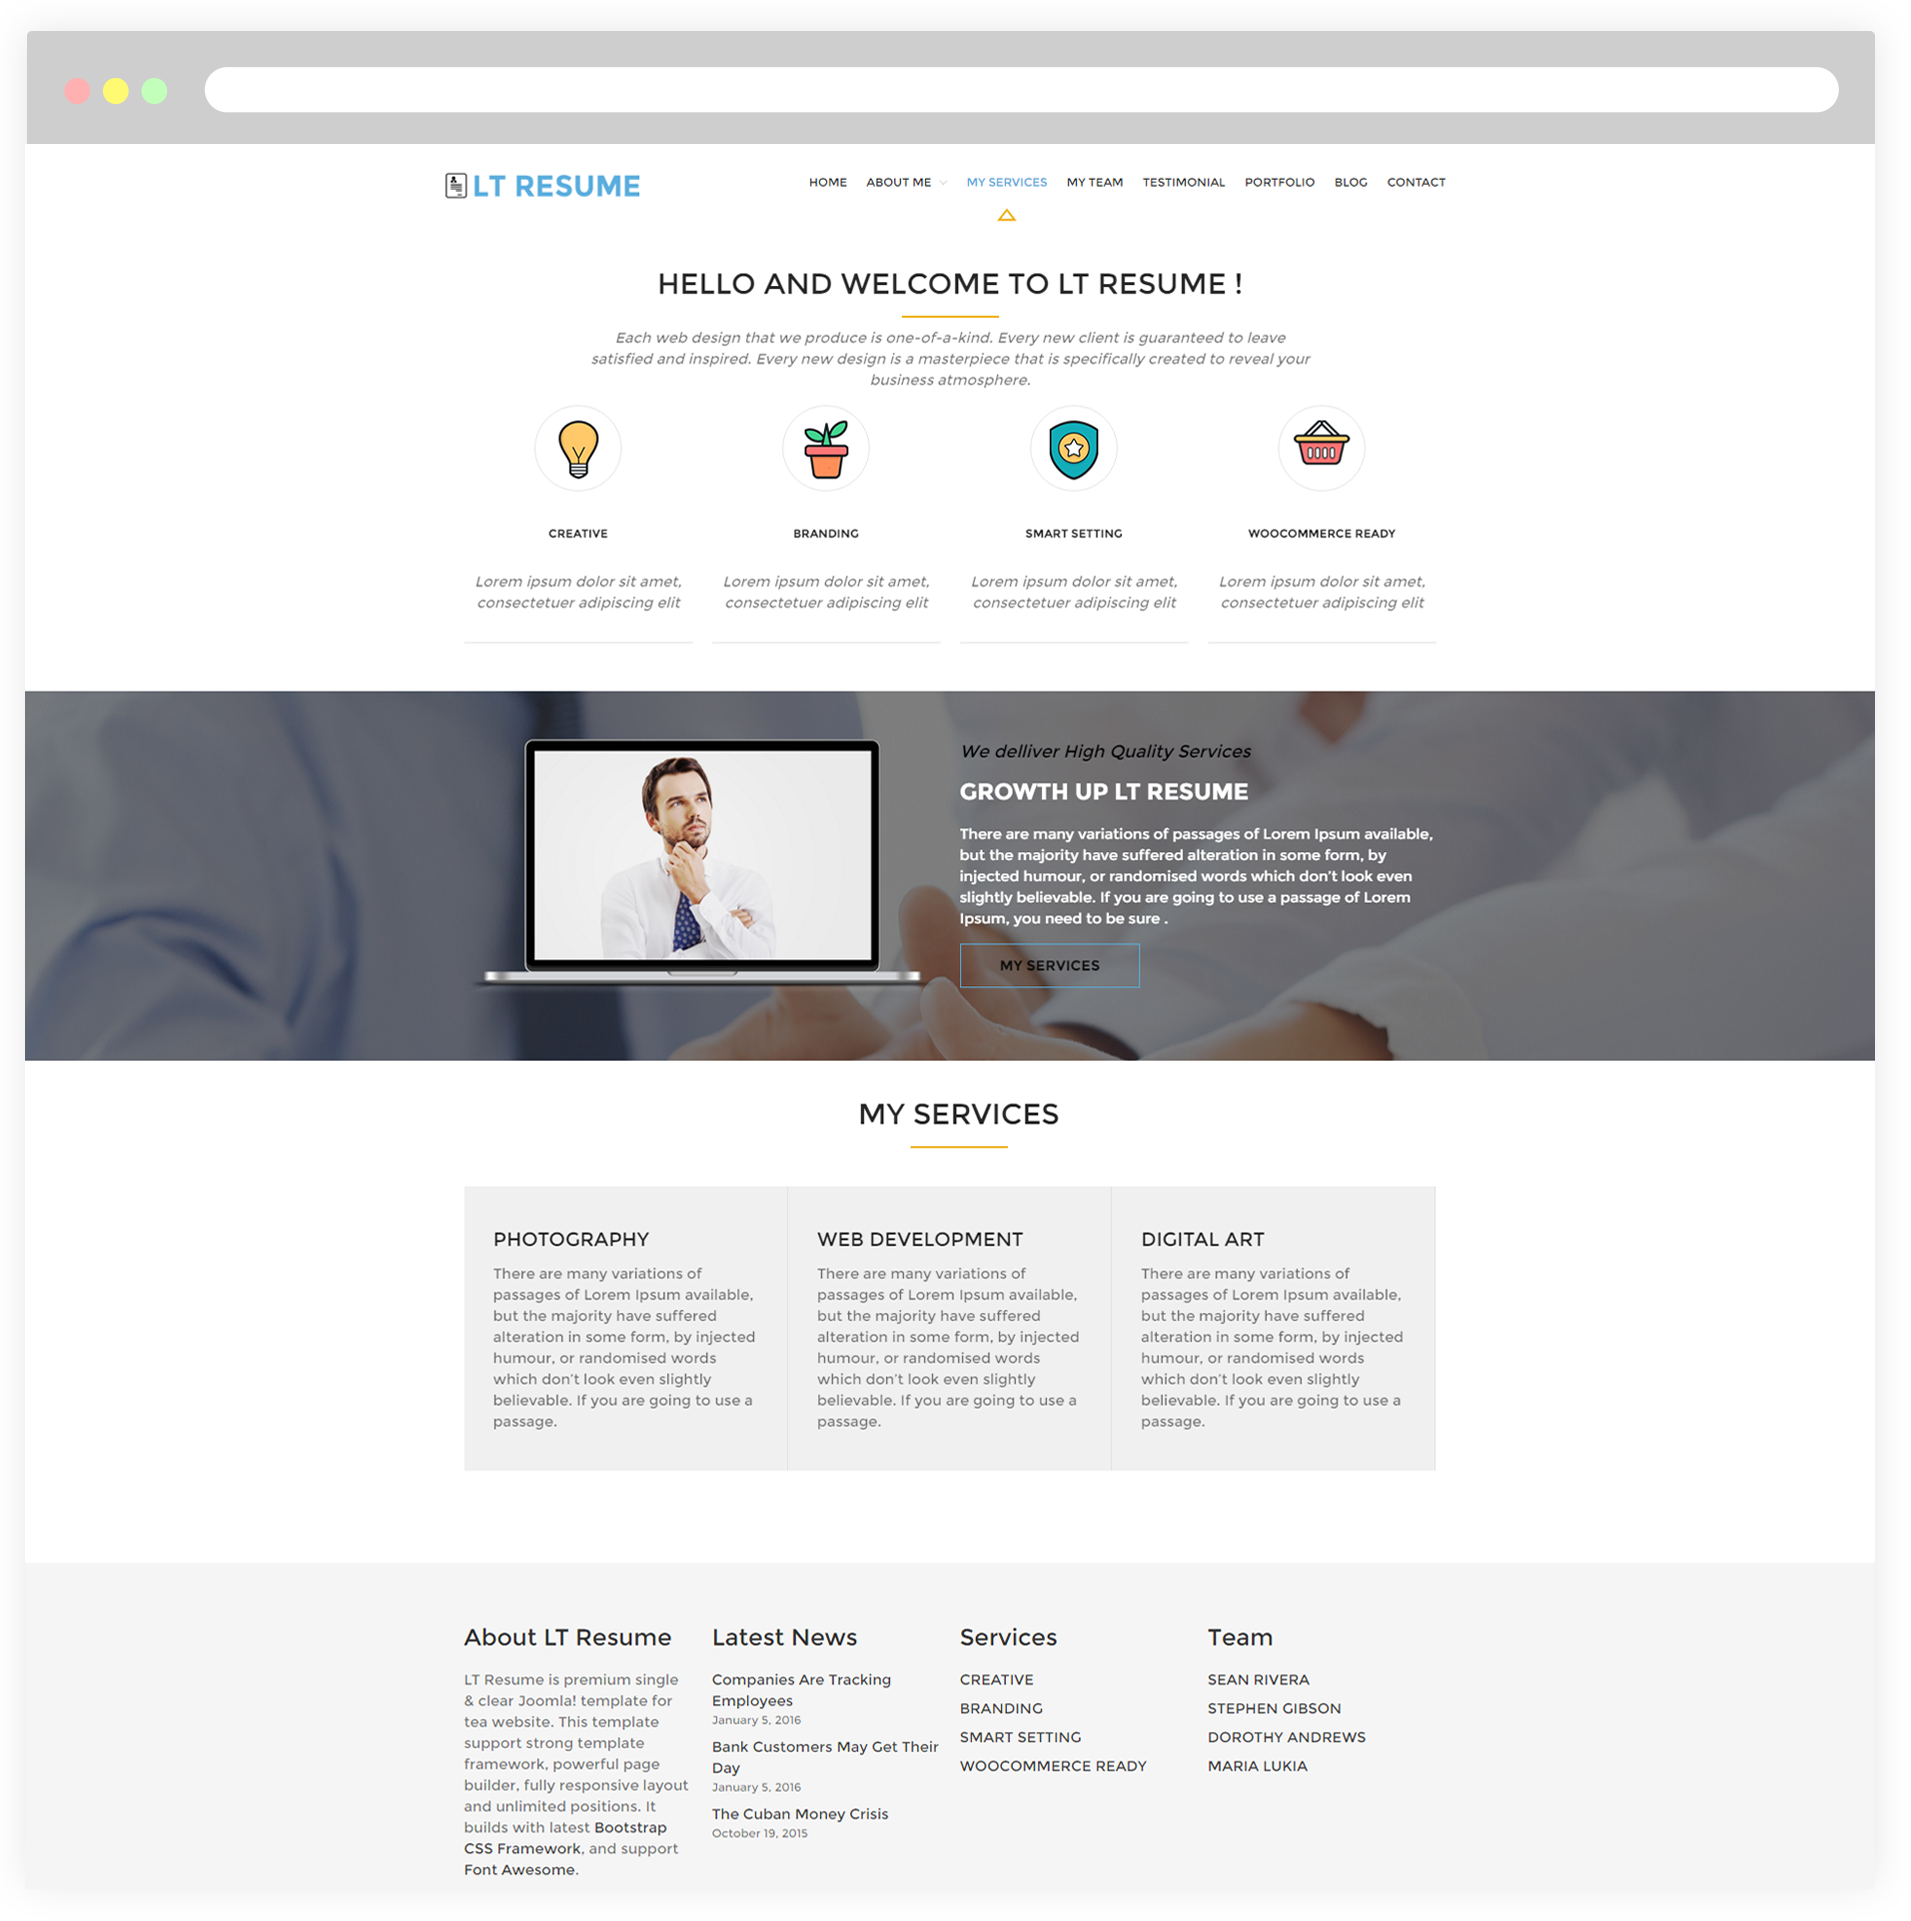 Lt resume free responsive personal cv wordpress resume theme my services page yelopaper Images